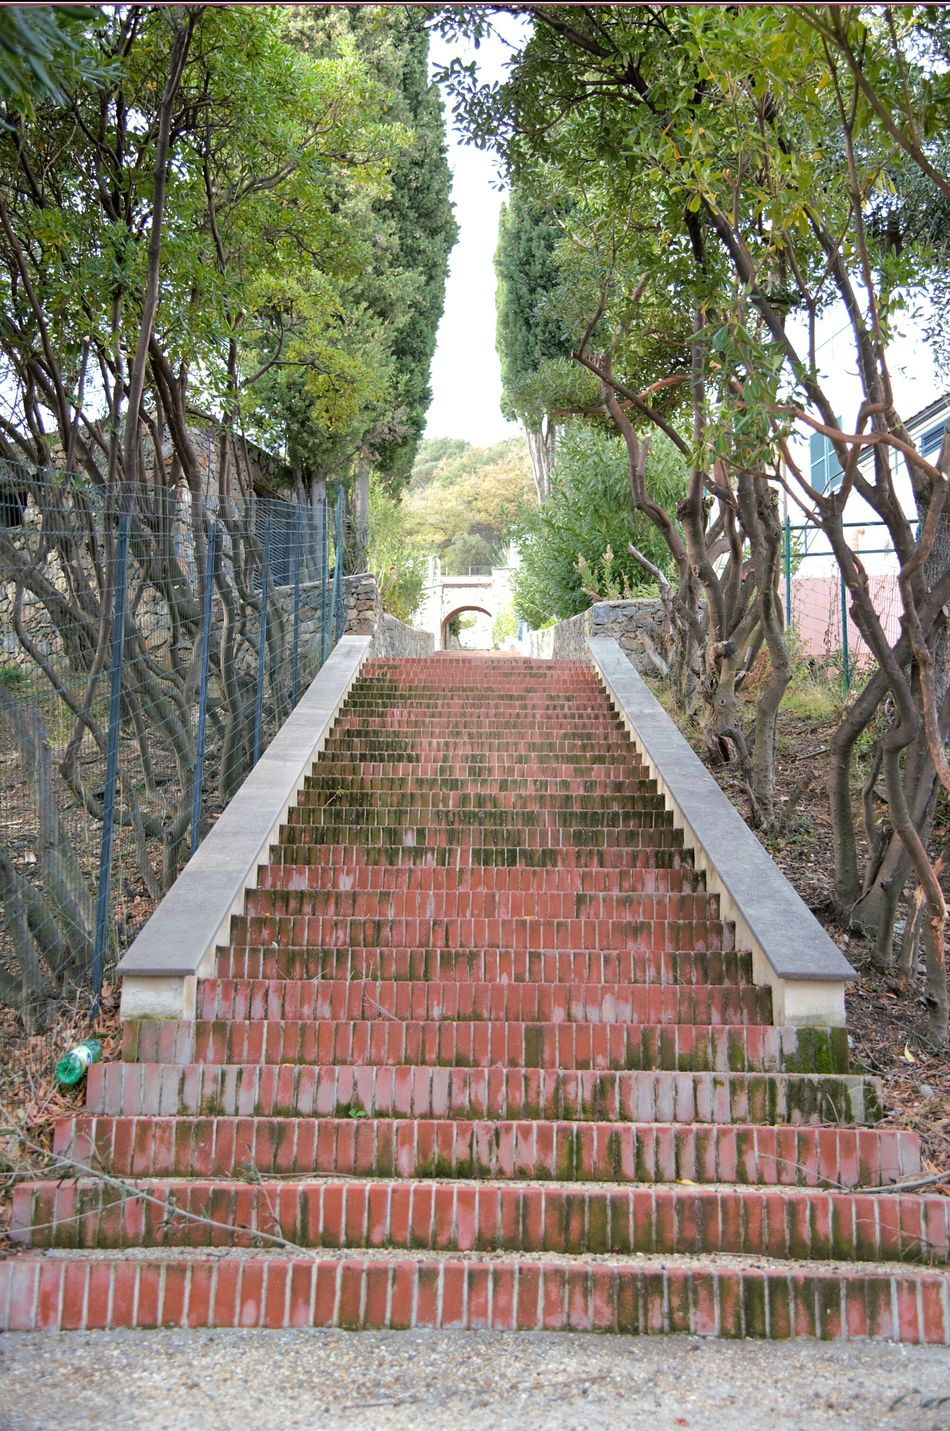 Tree Steps And Staircases Outdoors Scale  Architecture Scales And Fins Street Up Street Photography Finding New Frontiers Italy Landscape Brick Building Built Structure Brick Work Scalata Rural Scene Oldtown Streetphoto Bricks Bricks And Cement Brick Buildings Step By Step